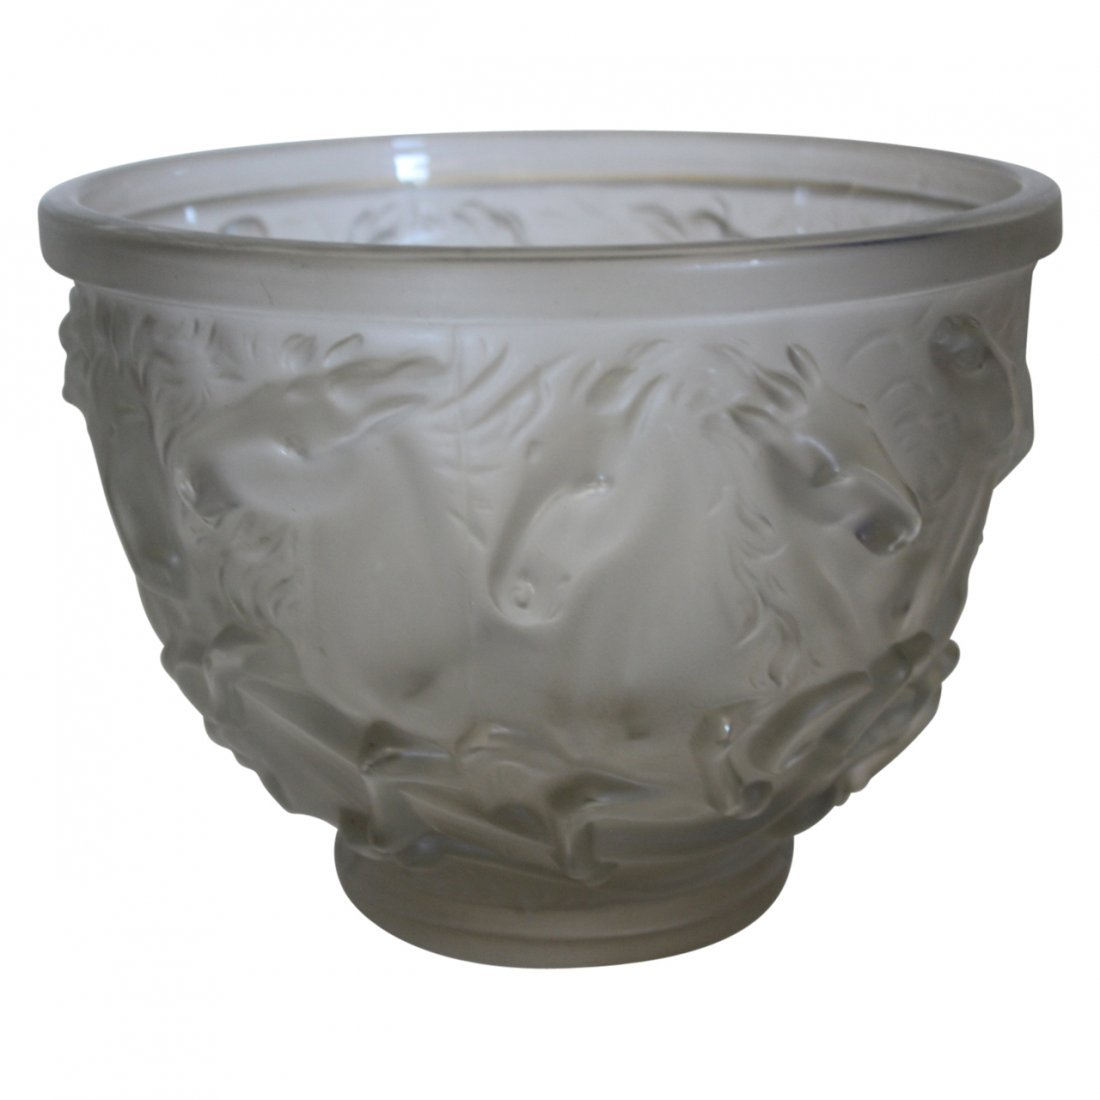 R. Lalique Art Glass Bowl with Horses Signed